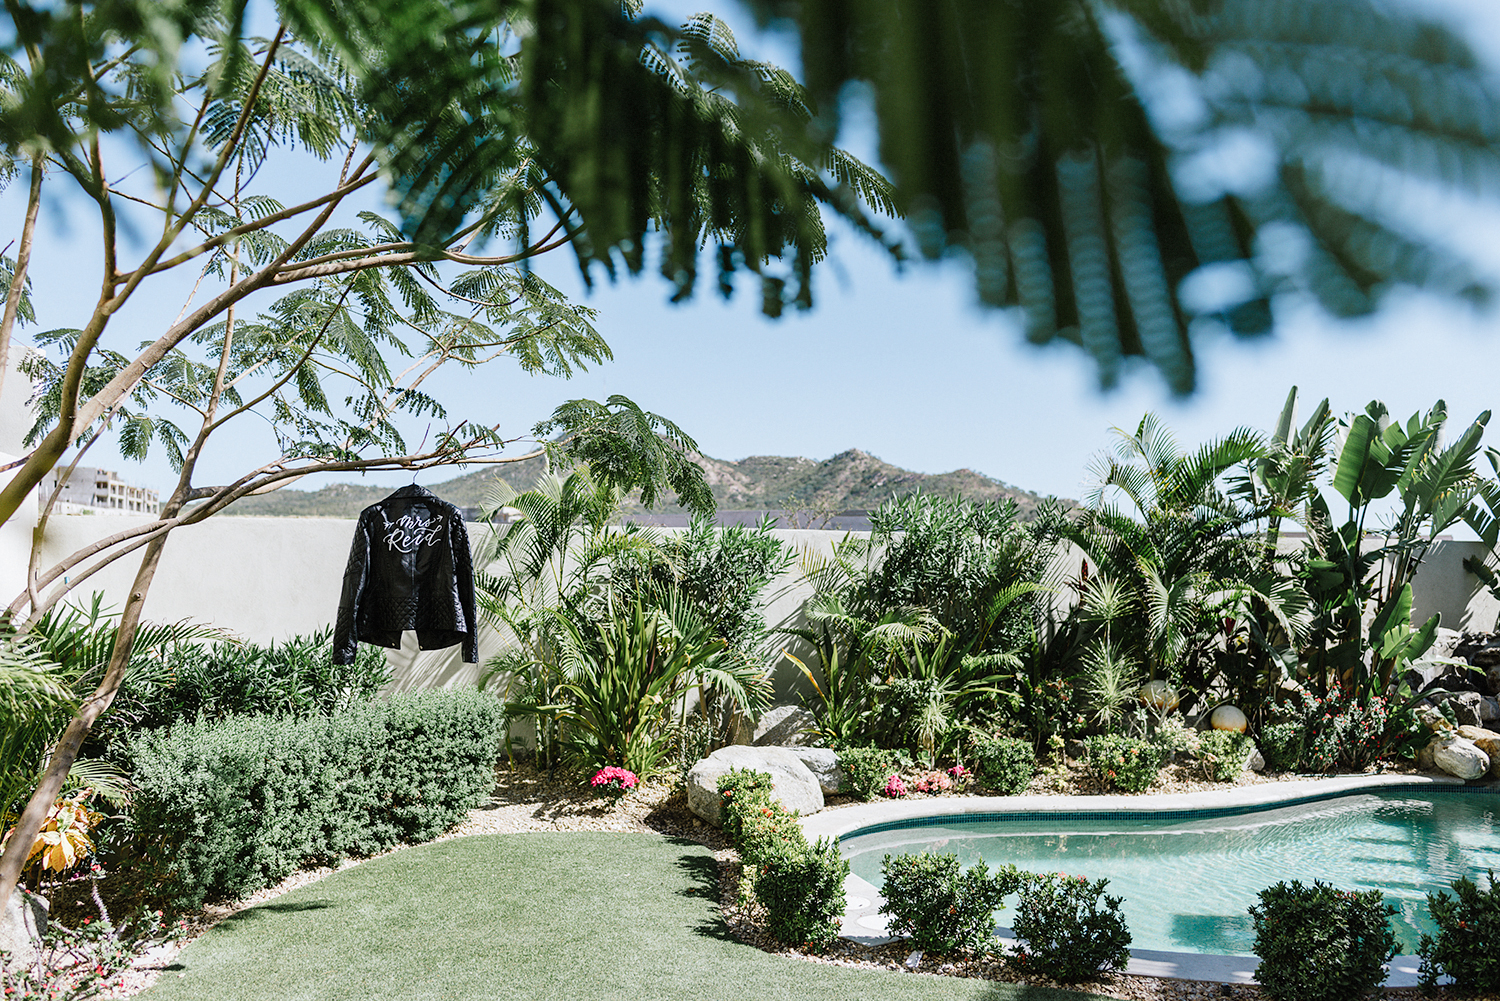 destination-wedding-cabo-san-lucas-ventanas-private-residence-alternative-toronto-wedding-photographer-details-palm-trees-getting-ready-just-married-jacket-details-leather-mrs-jacket-mountains.jpg